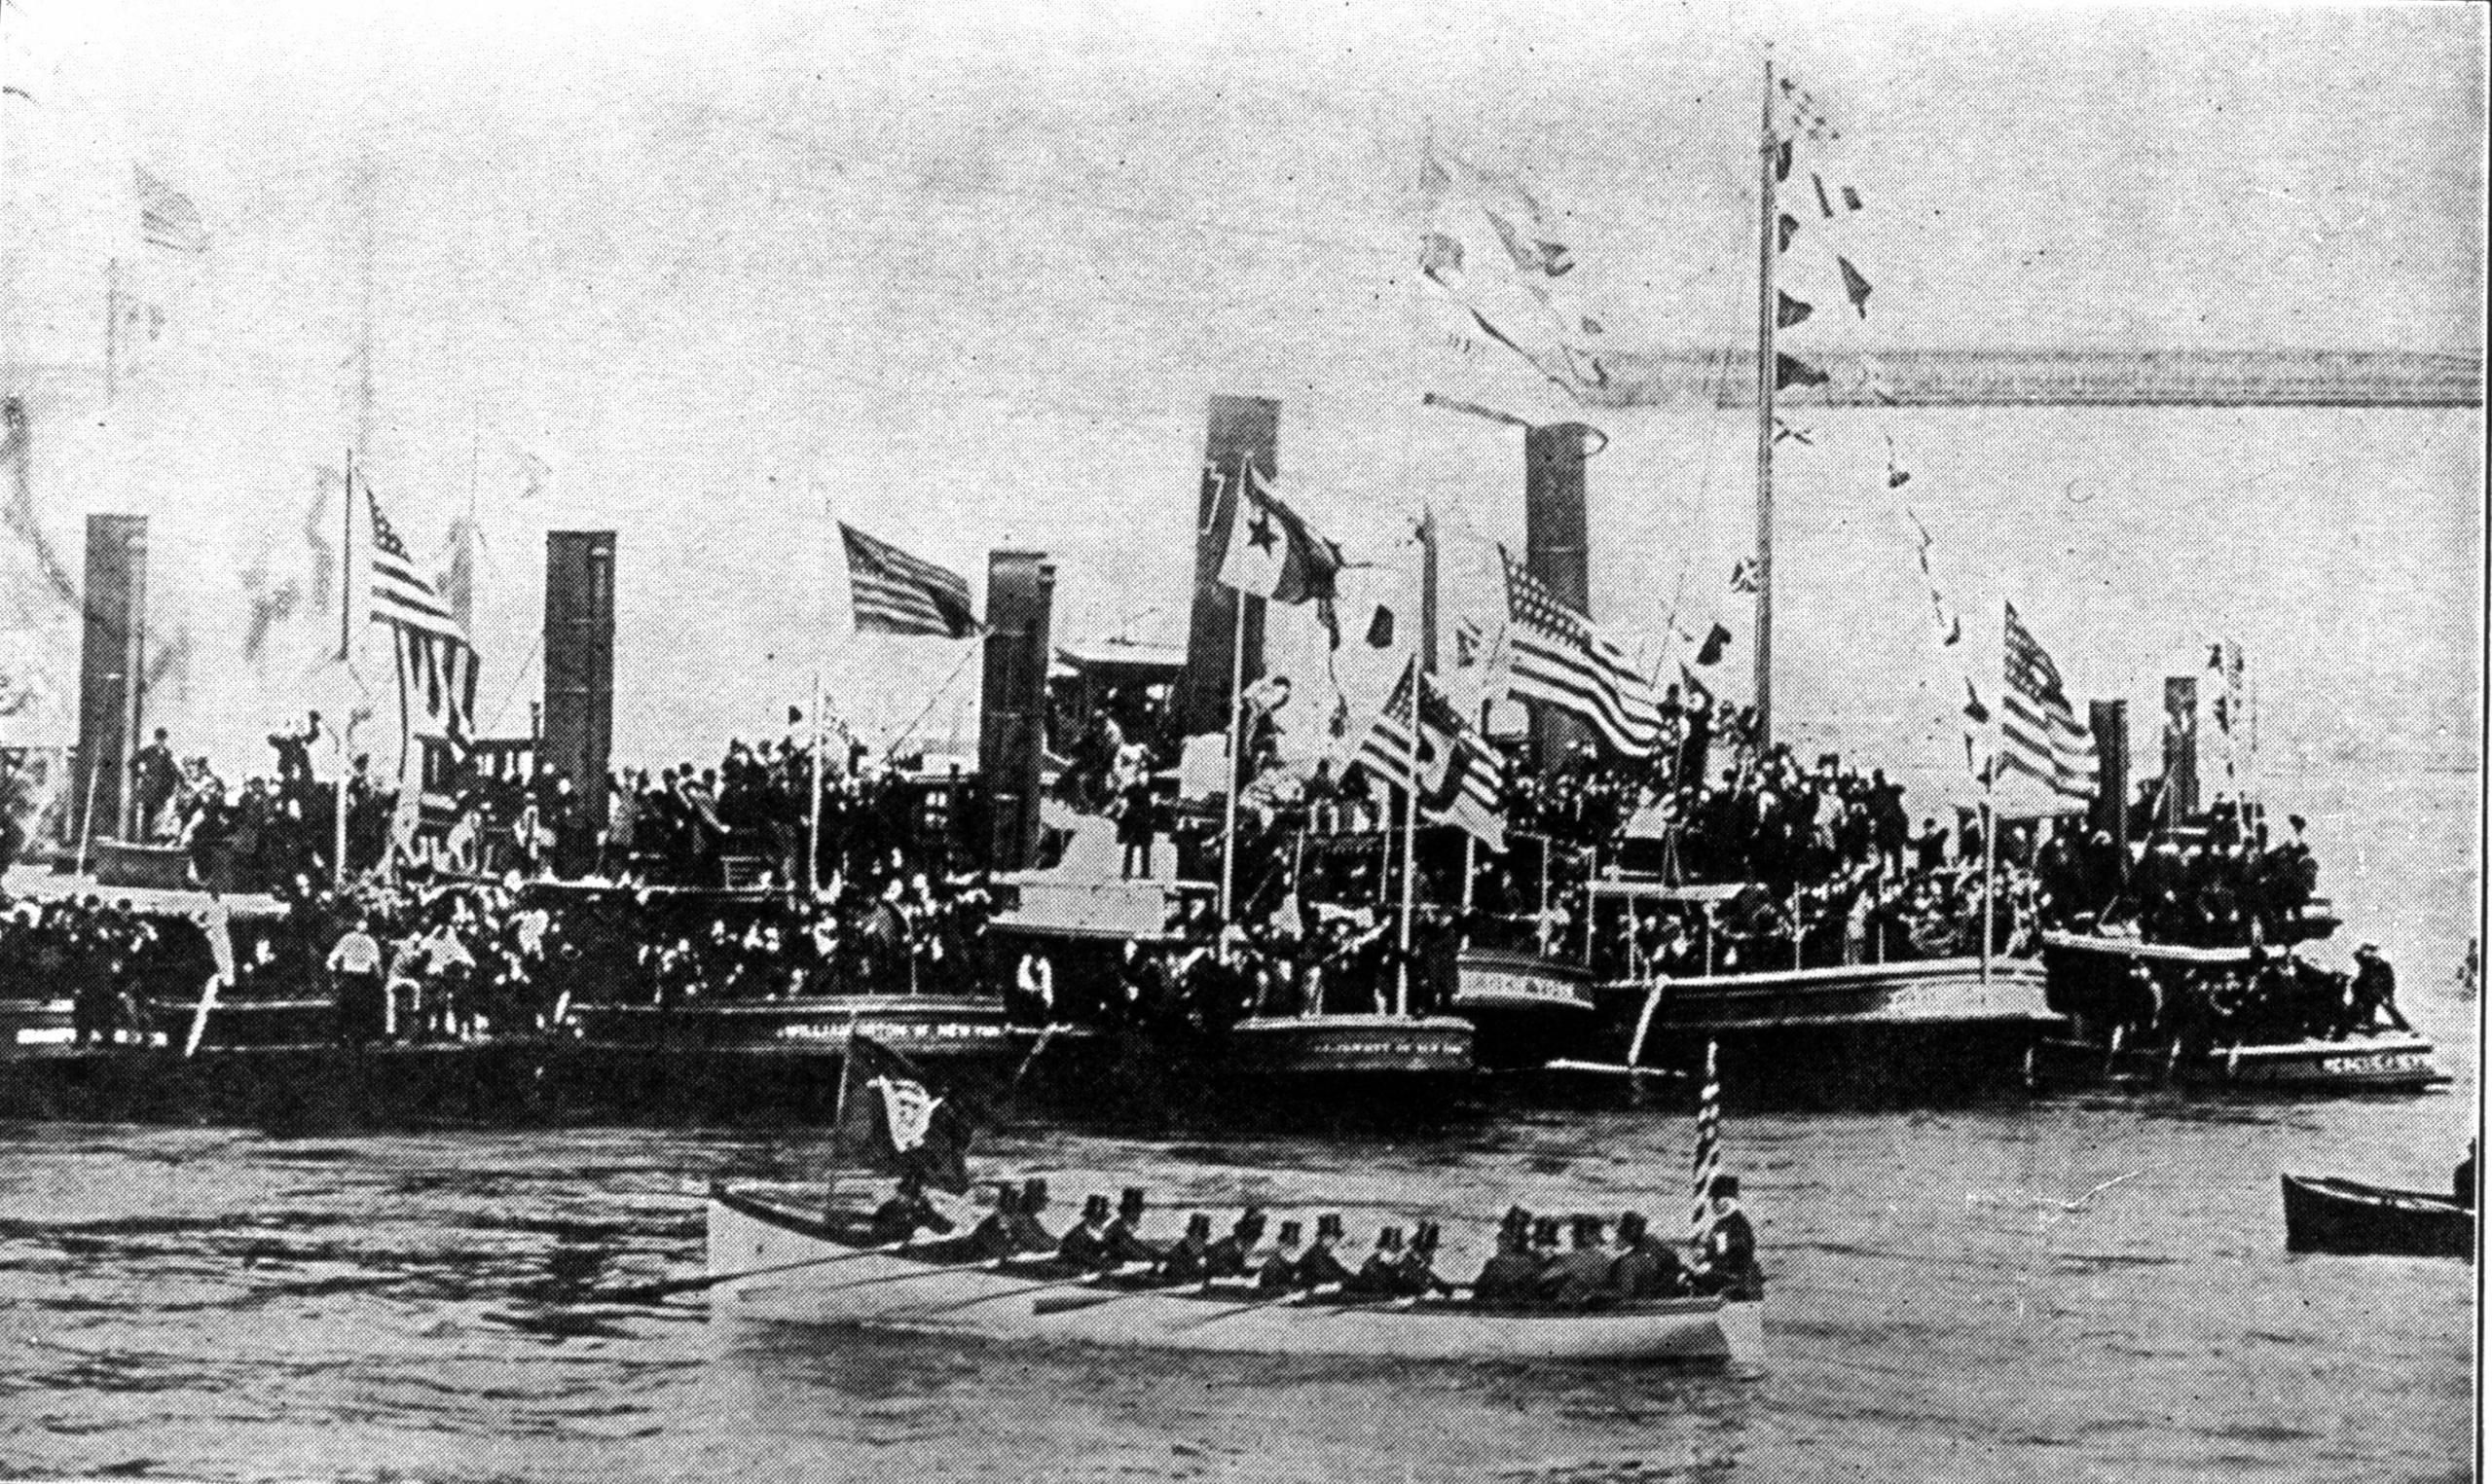 President Harrison being rowed ashore at foot of Wall Street, New York, April 29, 1889 (Wikimedia)